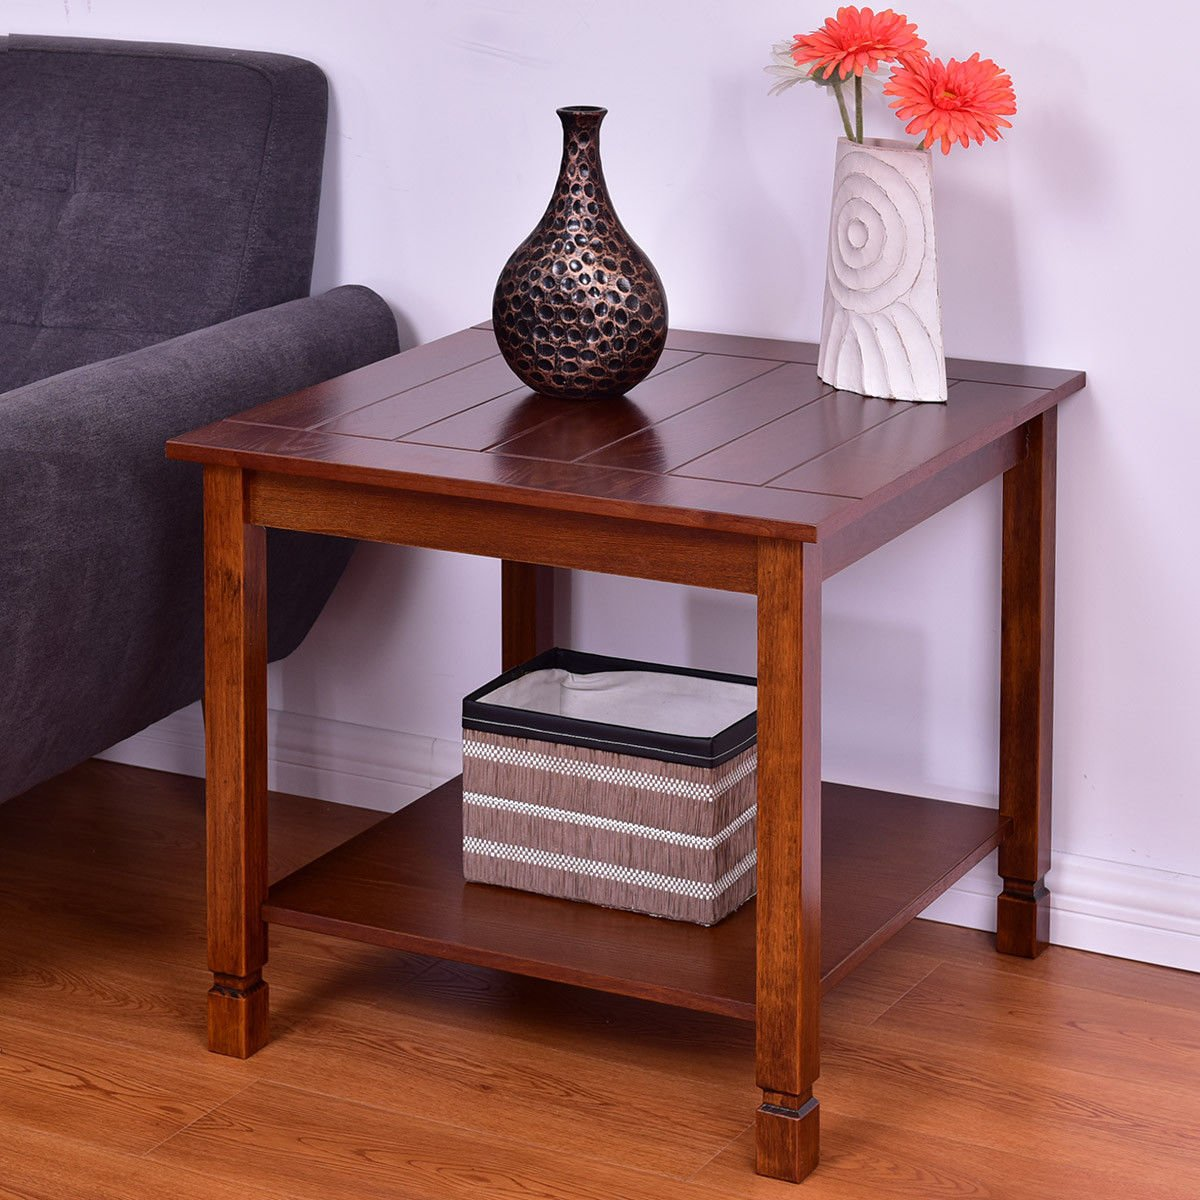 Giantex Pine Wood End Table with Shelf, 2-Tier Side Table with Storage Bedside Sofa Table for Living Room, Bedroom, Solid Sturcture Eco-Friendly Material Espresso Coffee Table Nightstand (Walnut) by Giantex (Image #2)